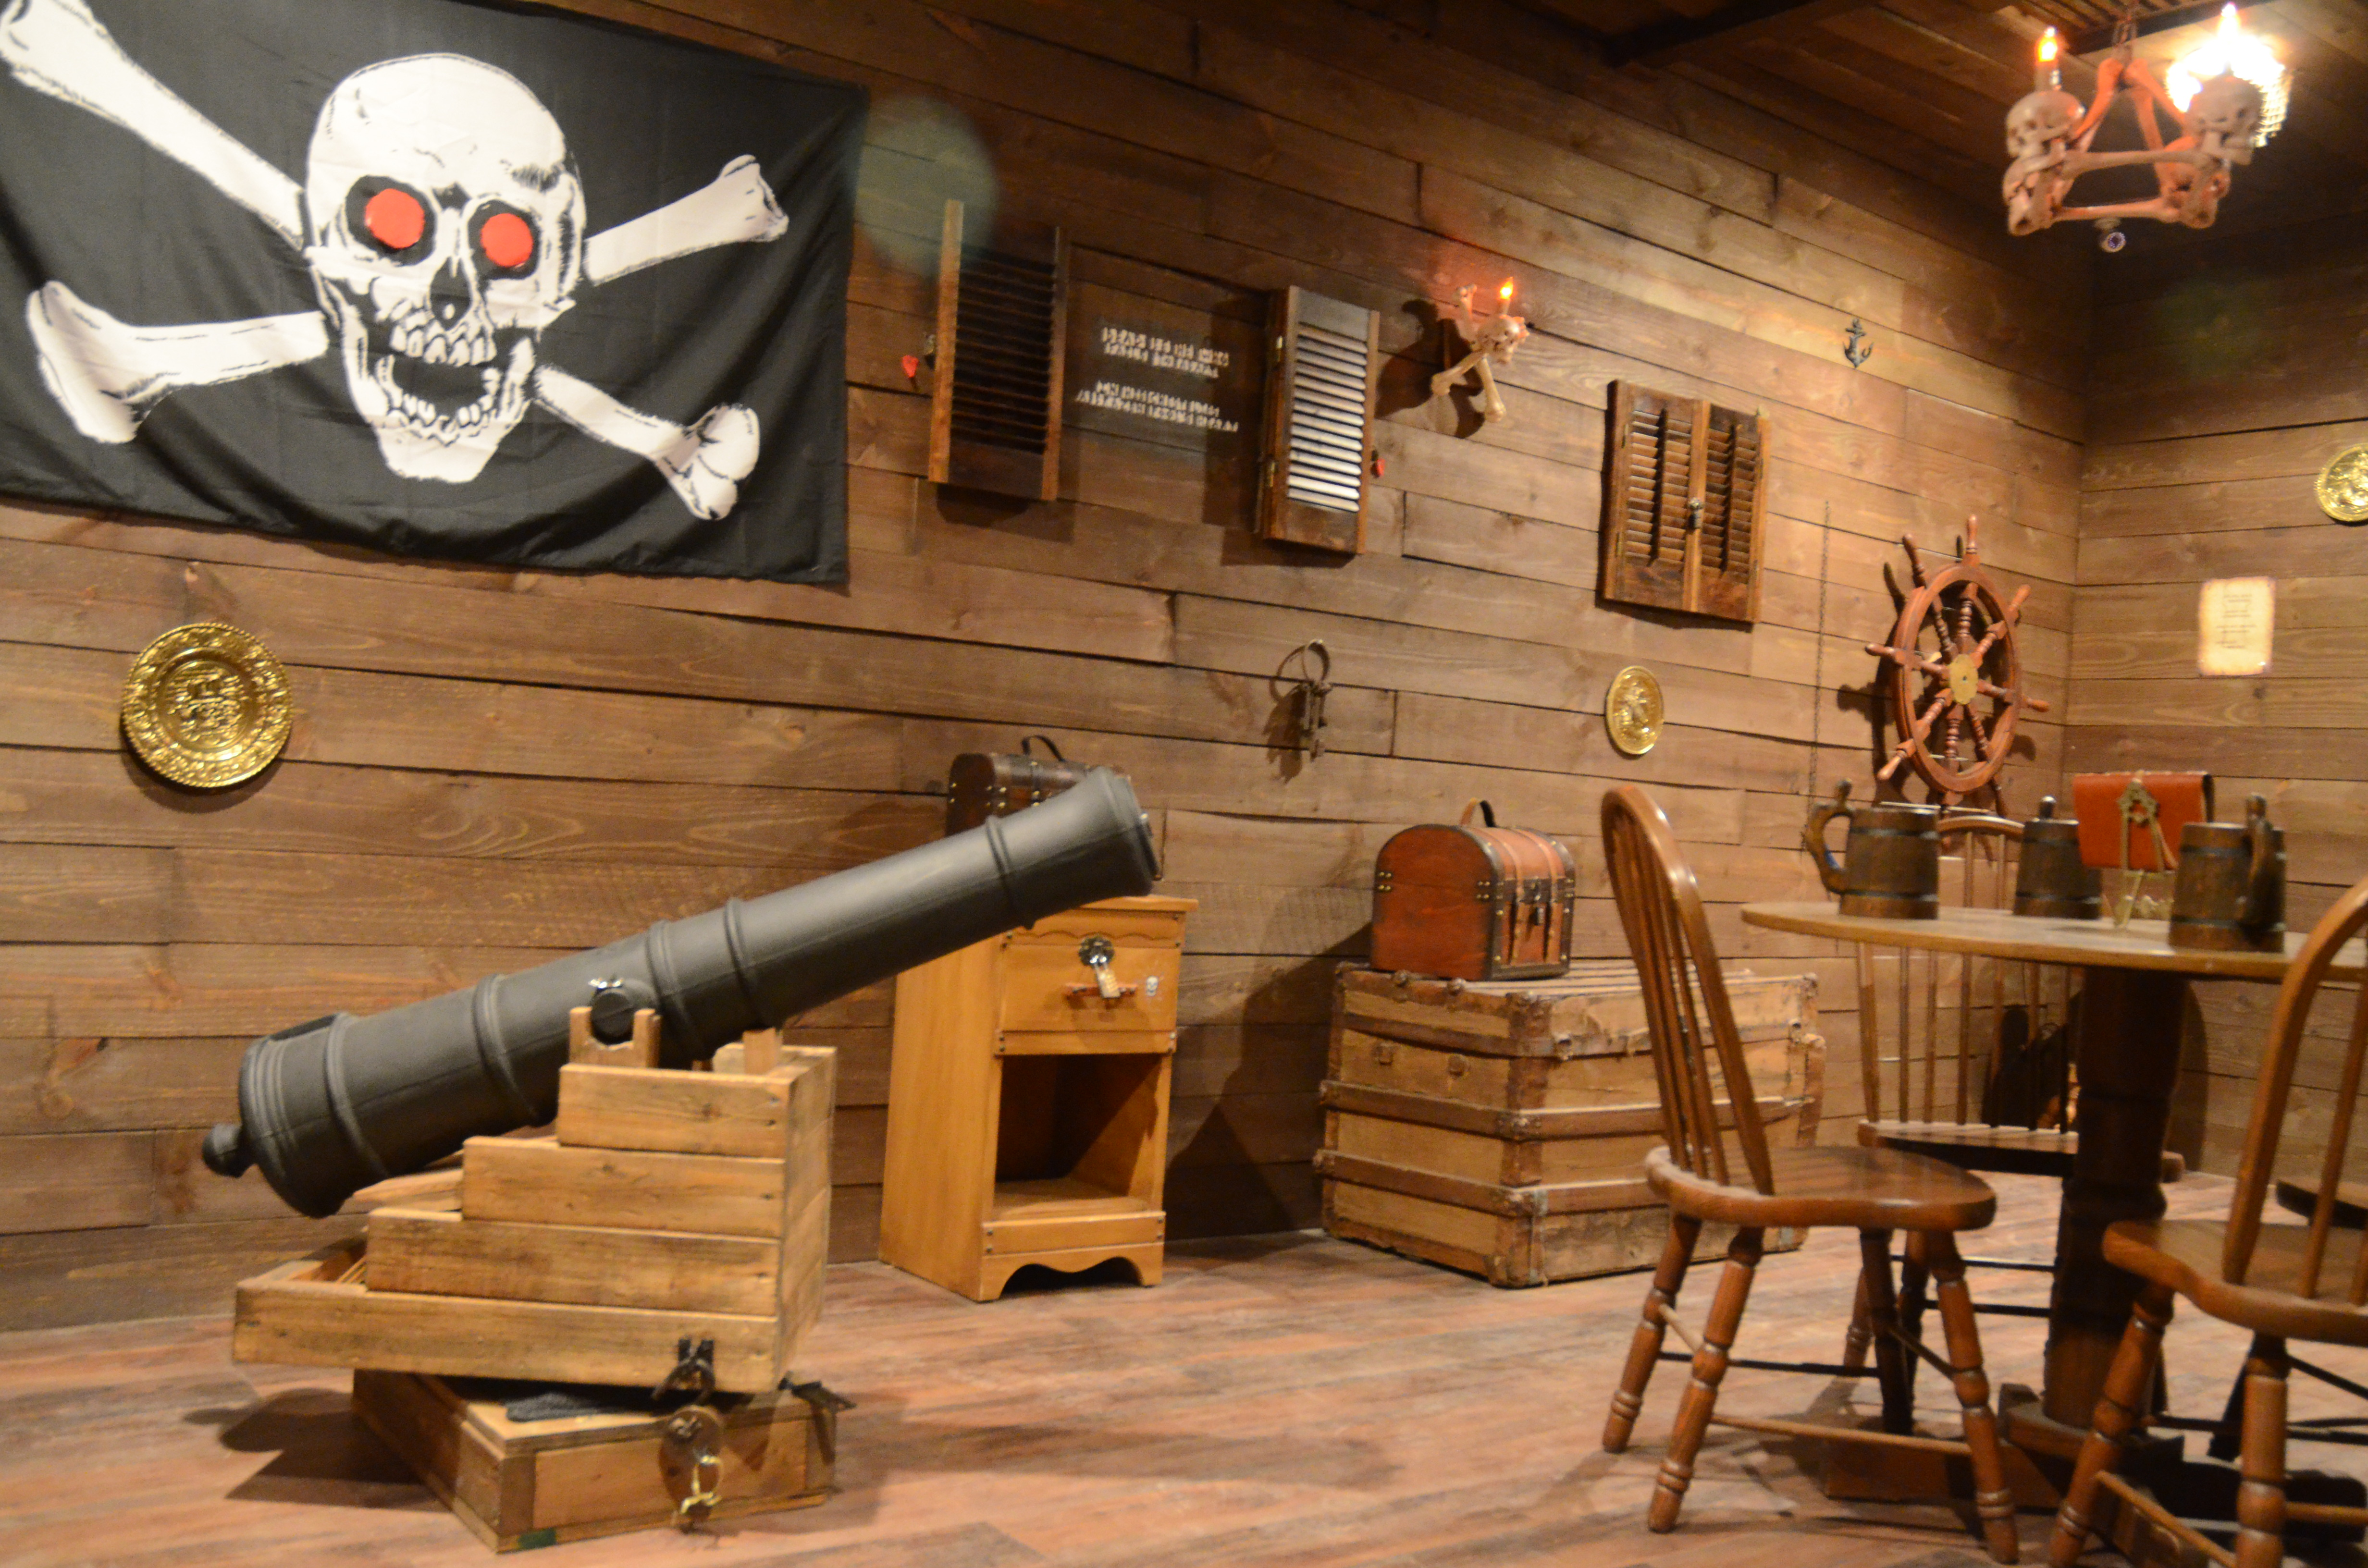 Gallery cannons direct for Secret escape games